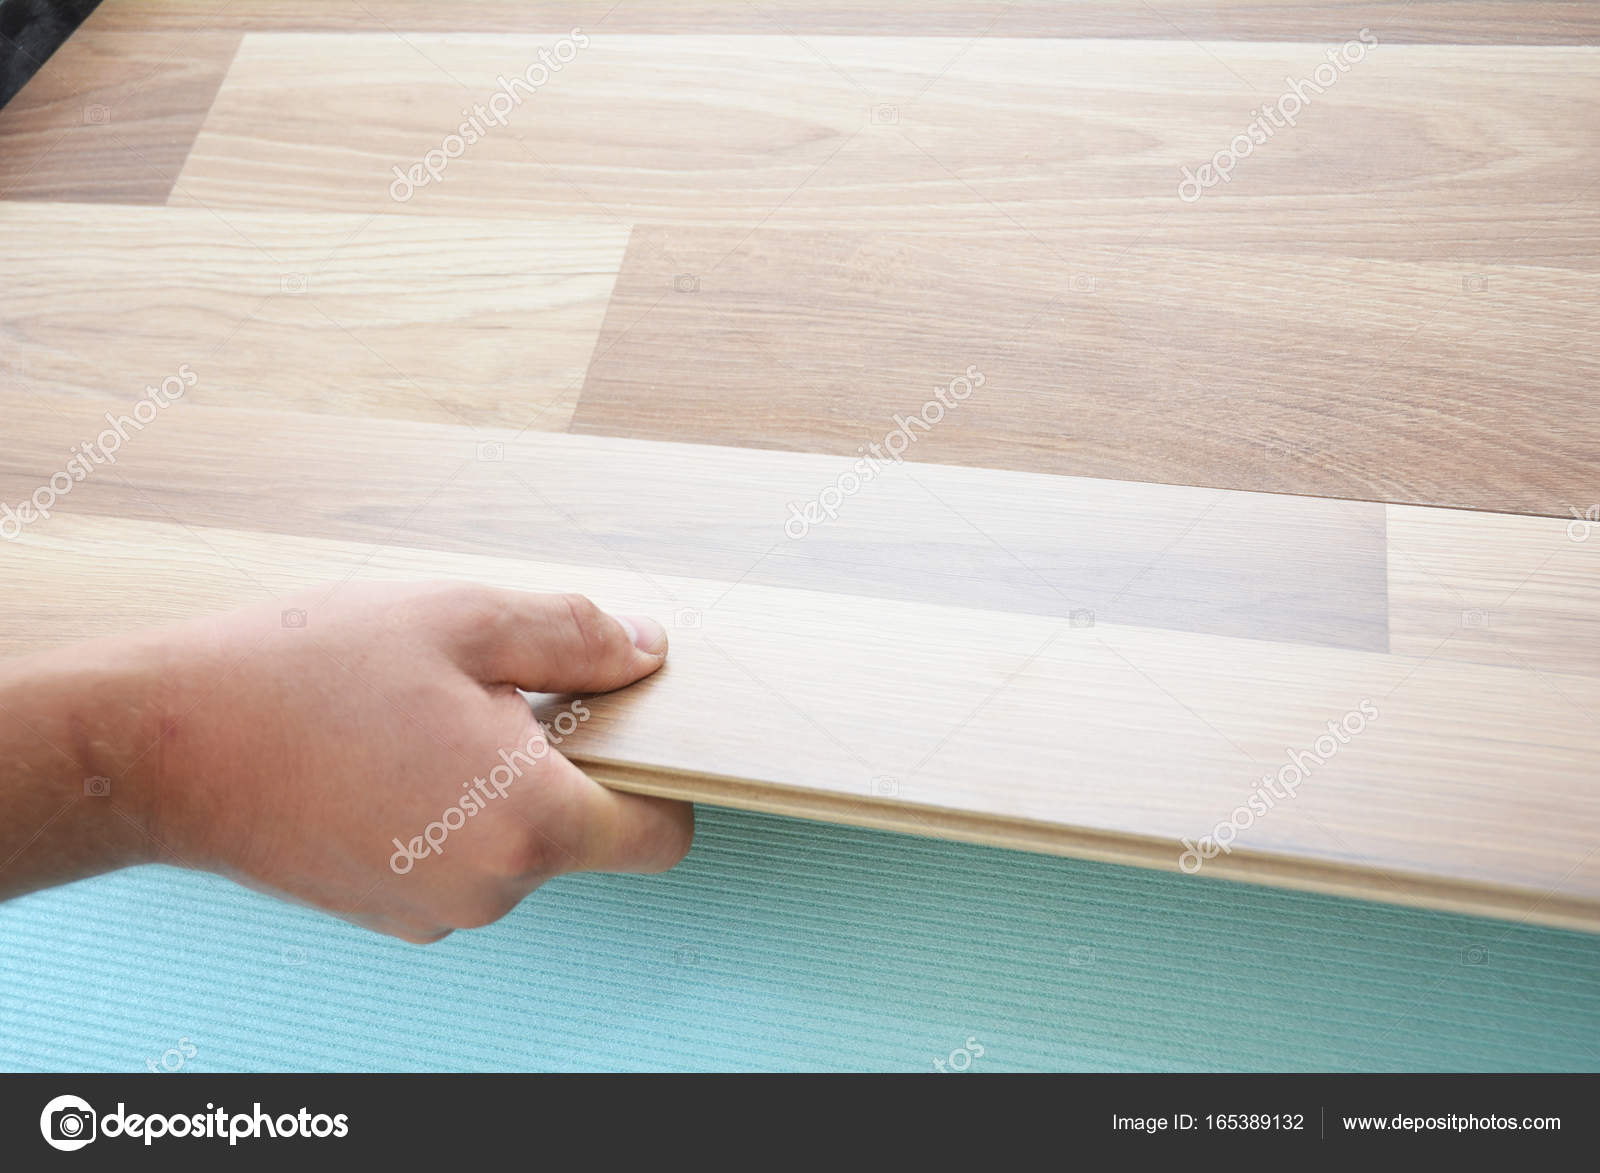 Contractor Installing Wooden Laminate Flooring With Insulation And Soundproofing Sheets Man Laying